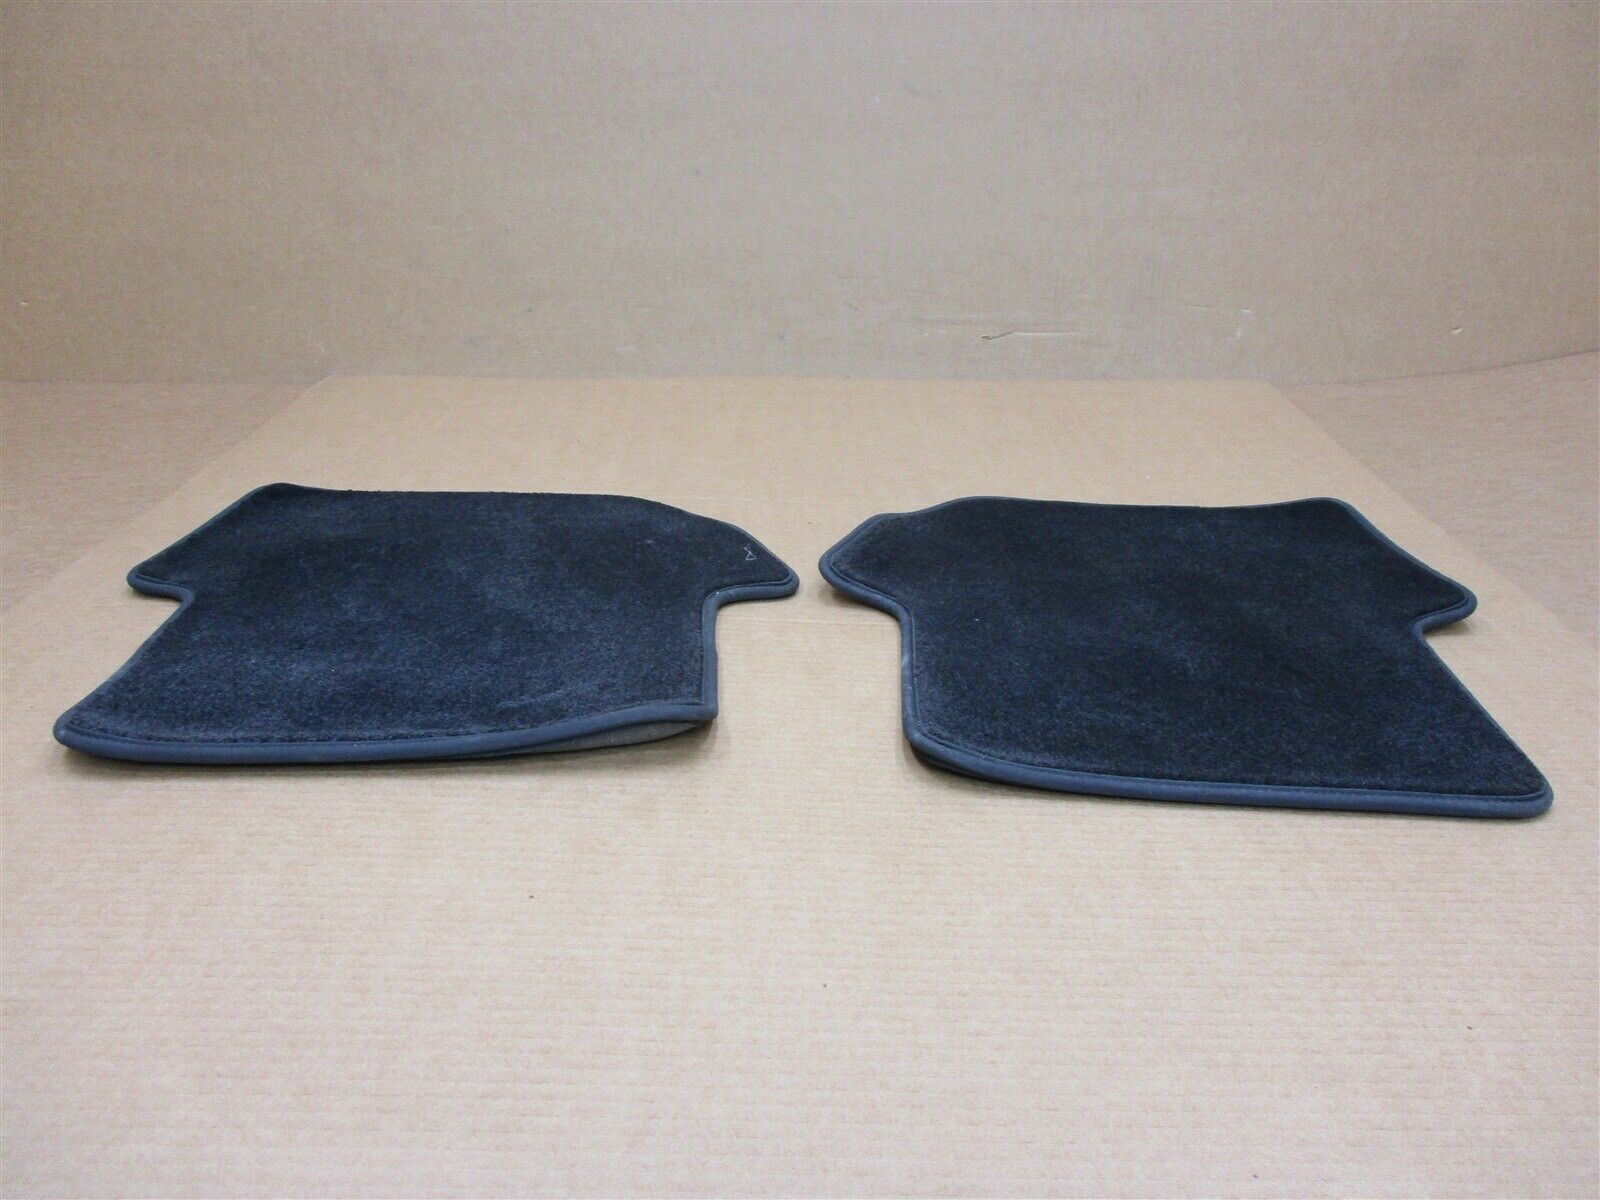 06 Carrera S 911 RWD Porsche 997 Coupe L R REAR FLOOR MATS CARPET 84,428